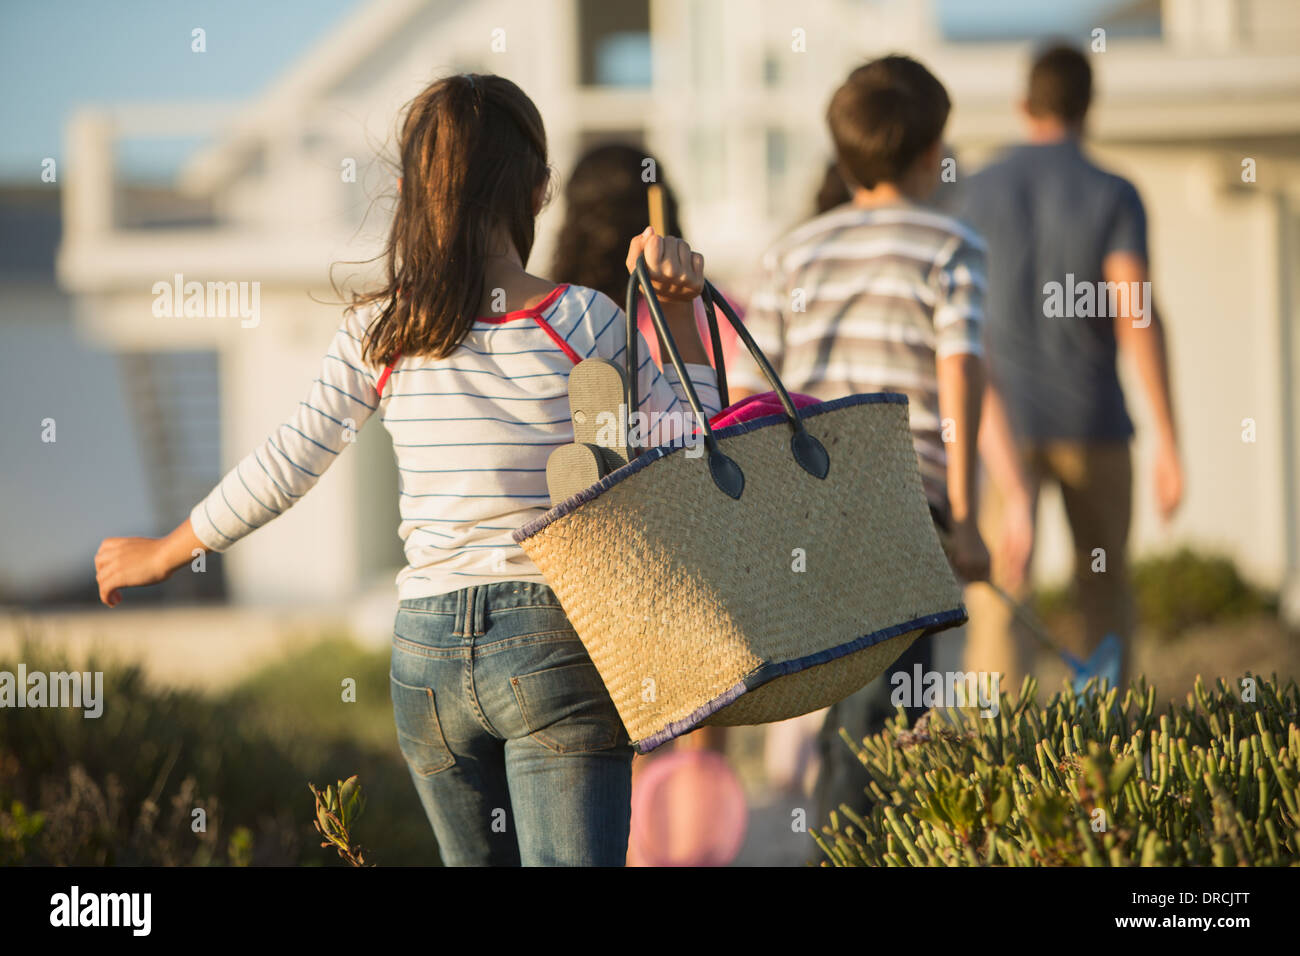 Girl with beach bag following family - Stock Image